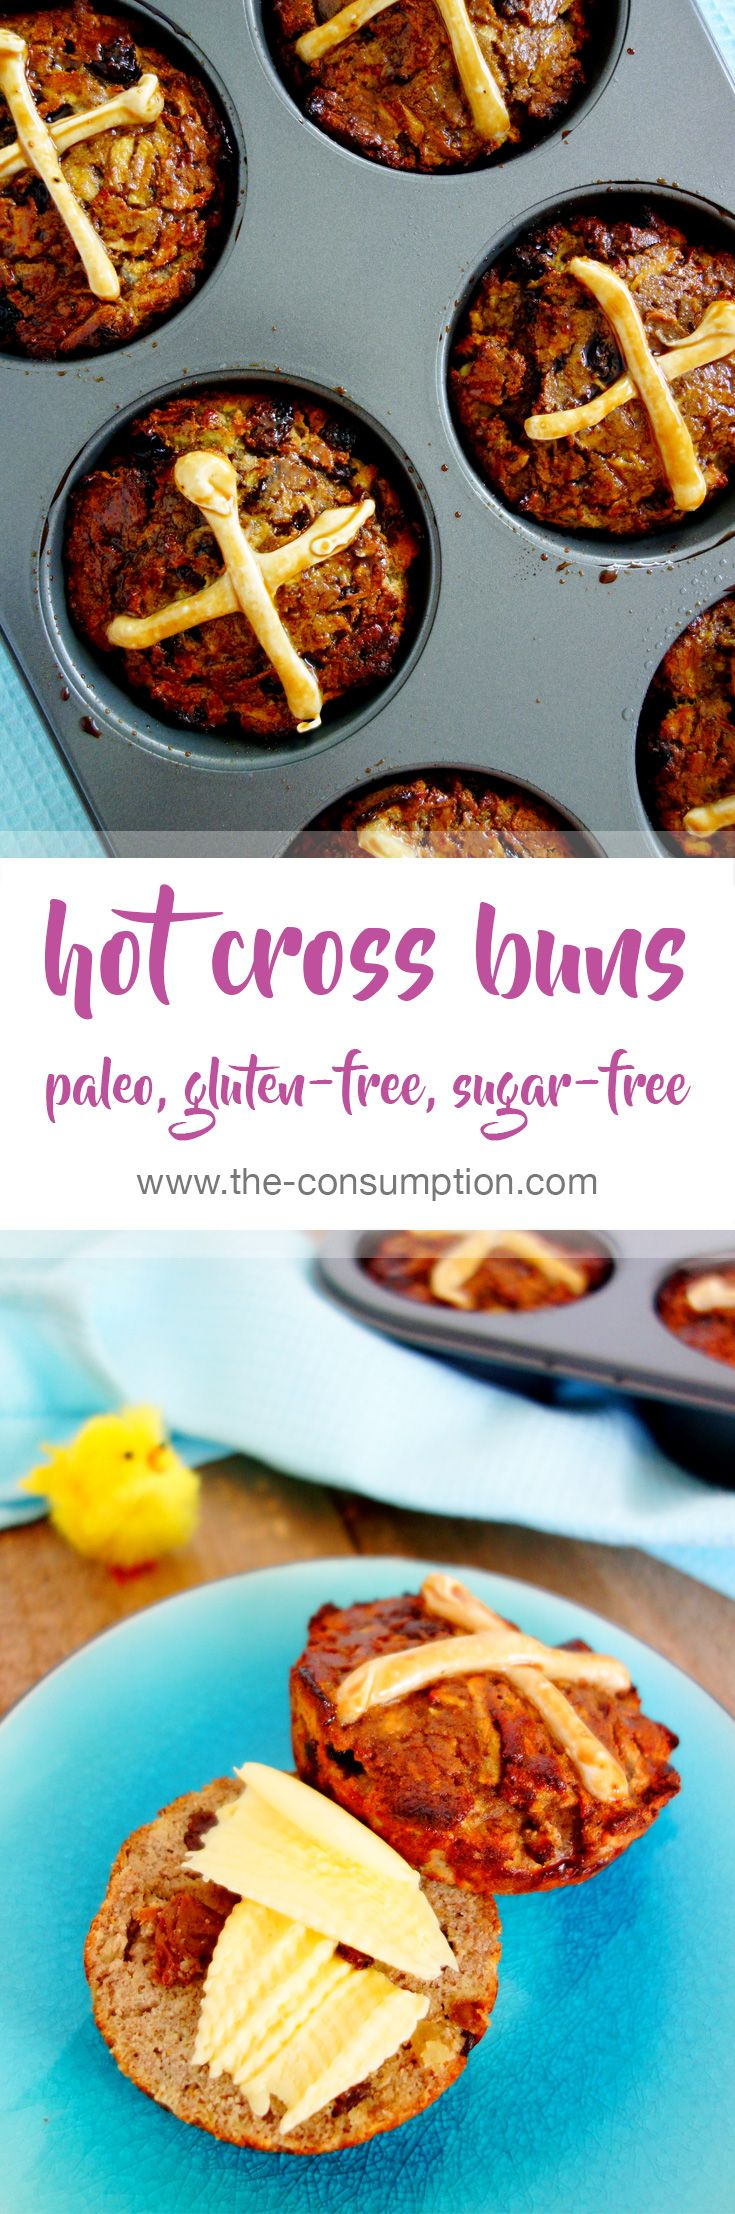 Easter Hot Cross Buns – Paleo, Gluten and Refined Sugar Free